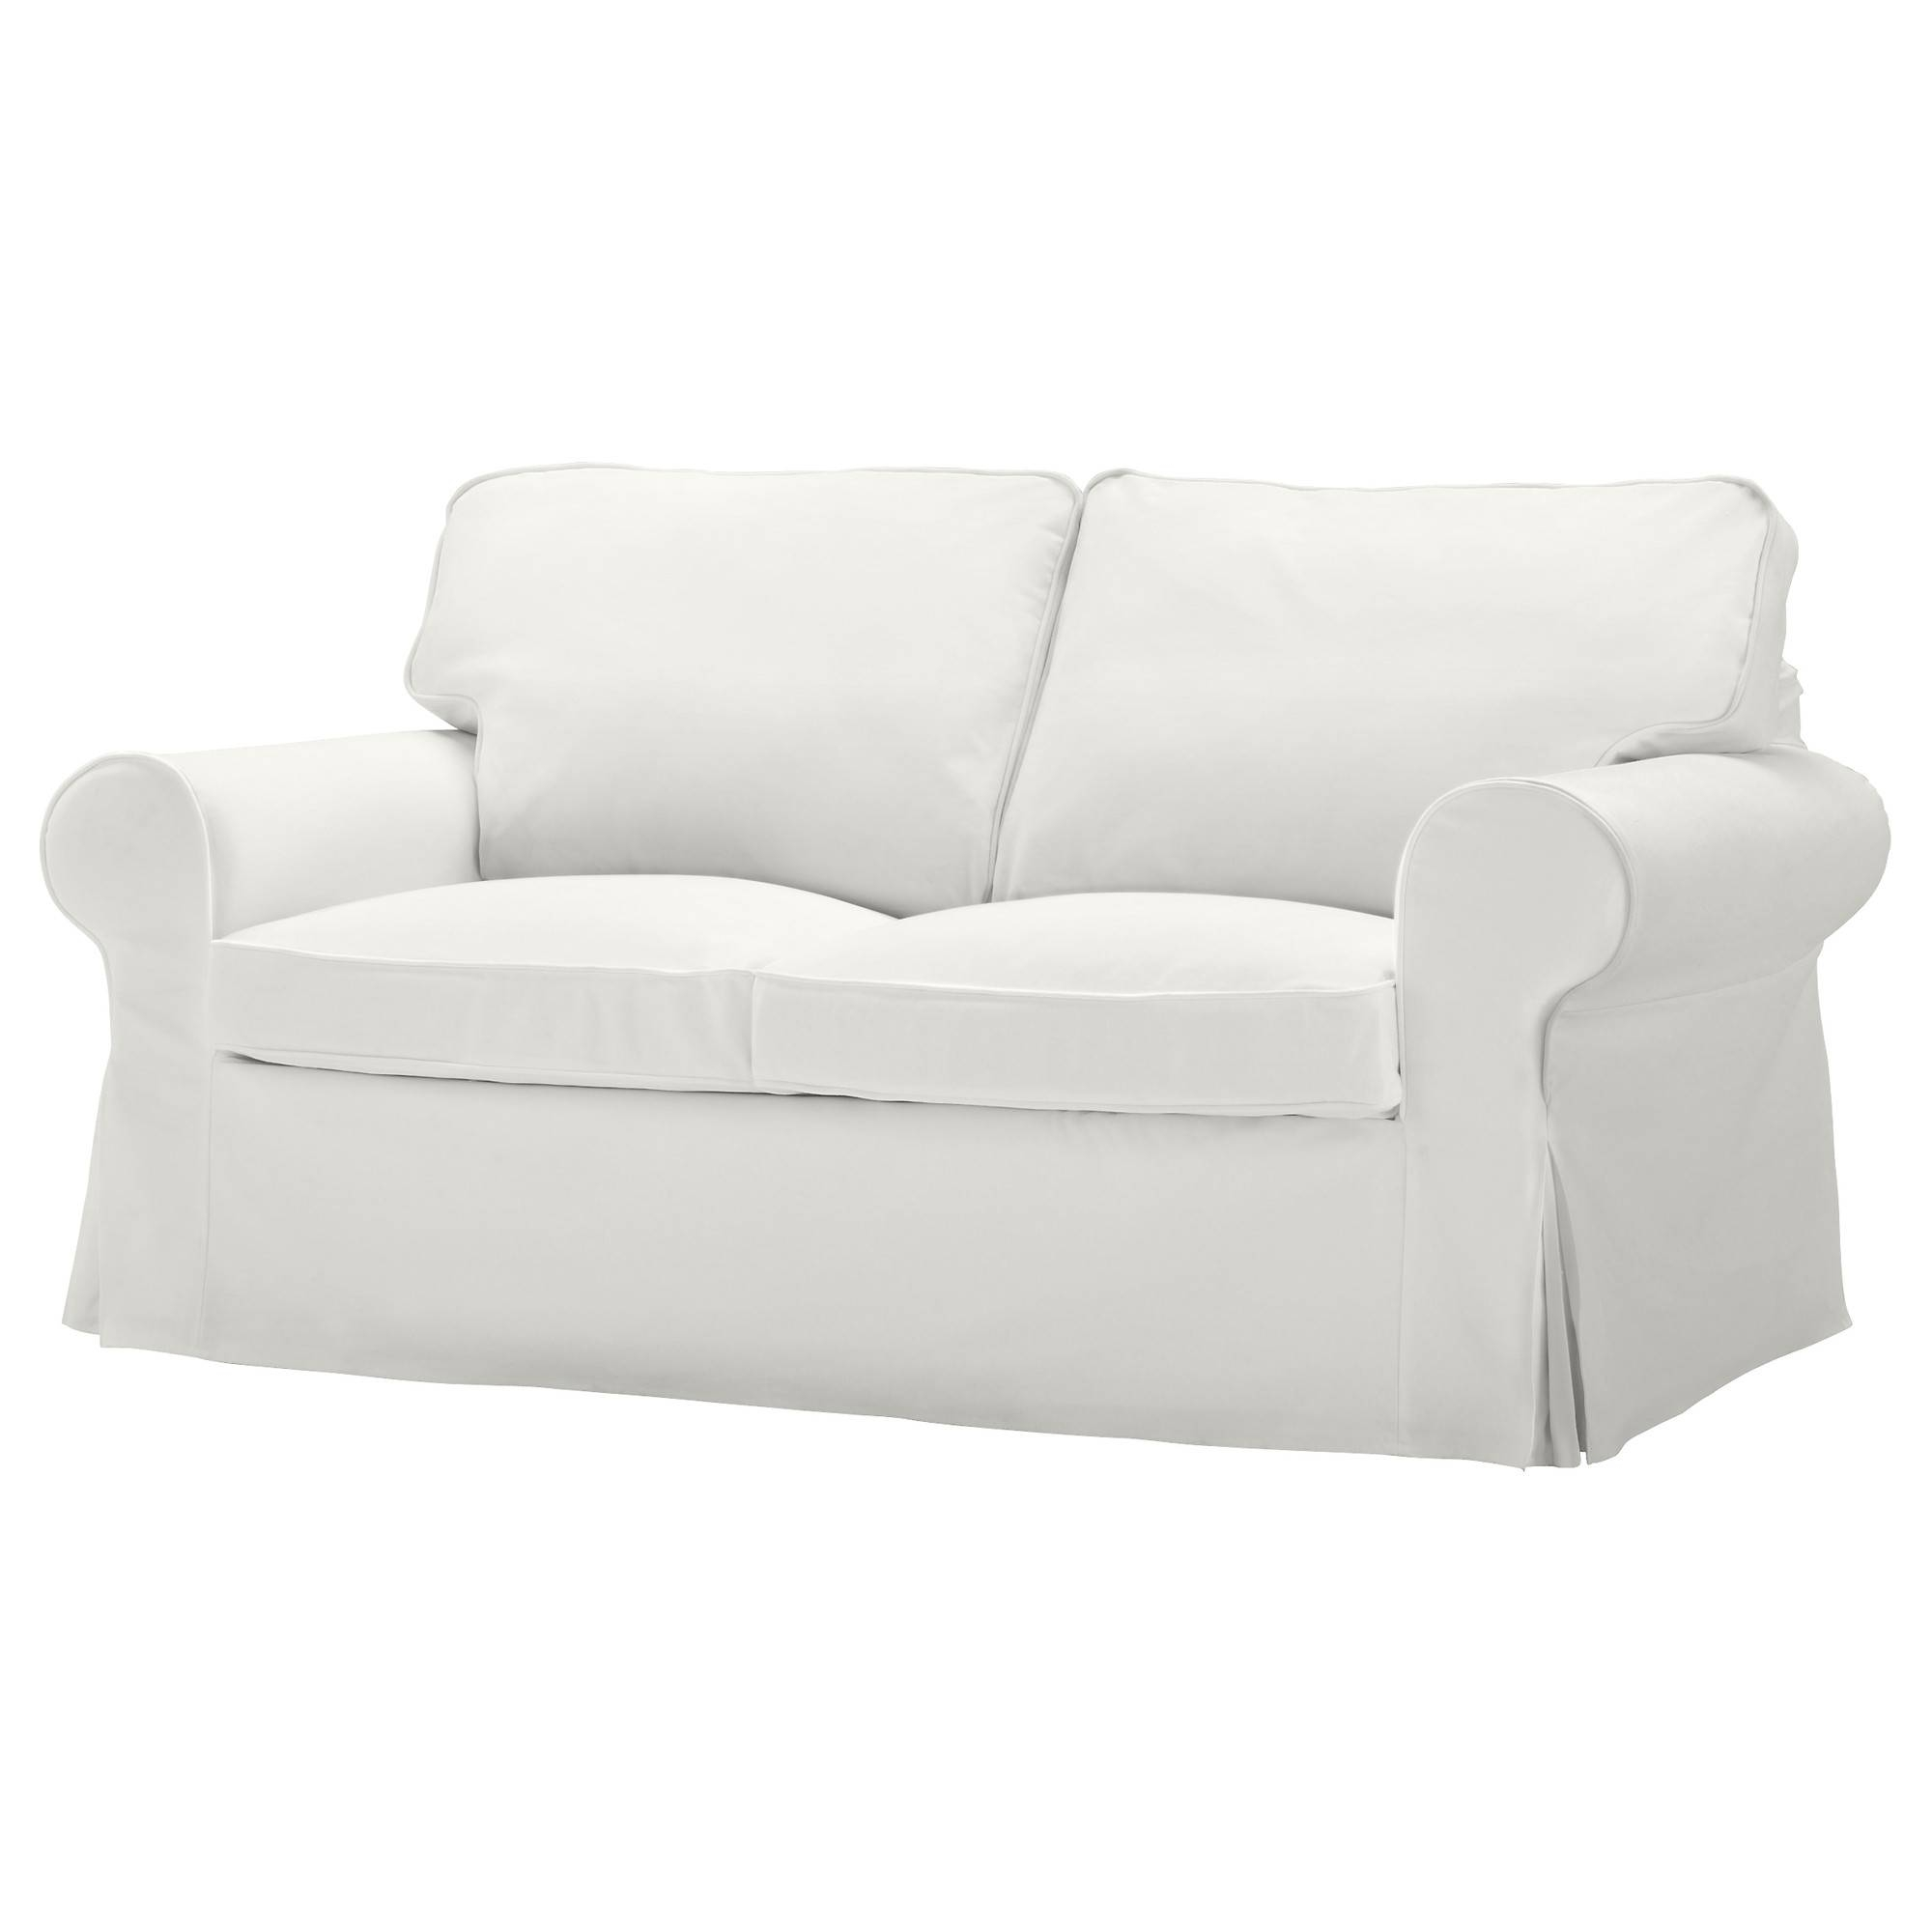 Ektorp Two-Seat Sofa Blekinge White - Ikea regarding Ikea Two Seater Sofas (Image 4 of 30)